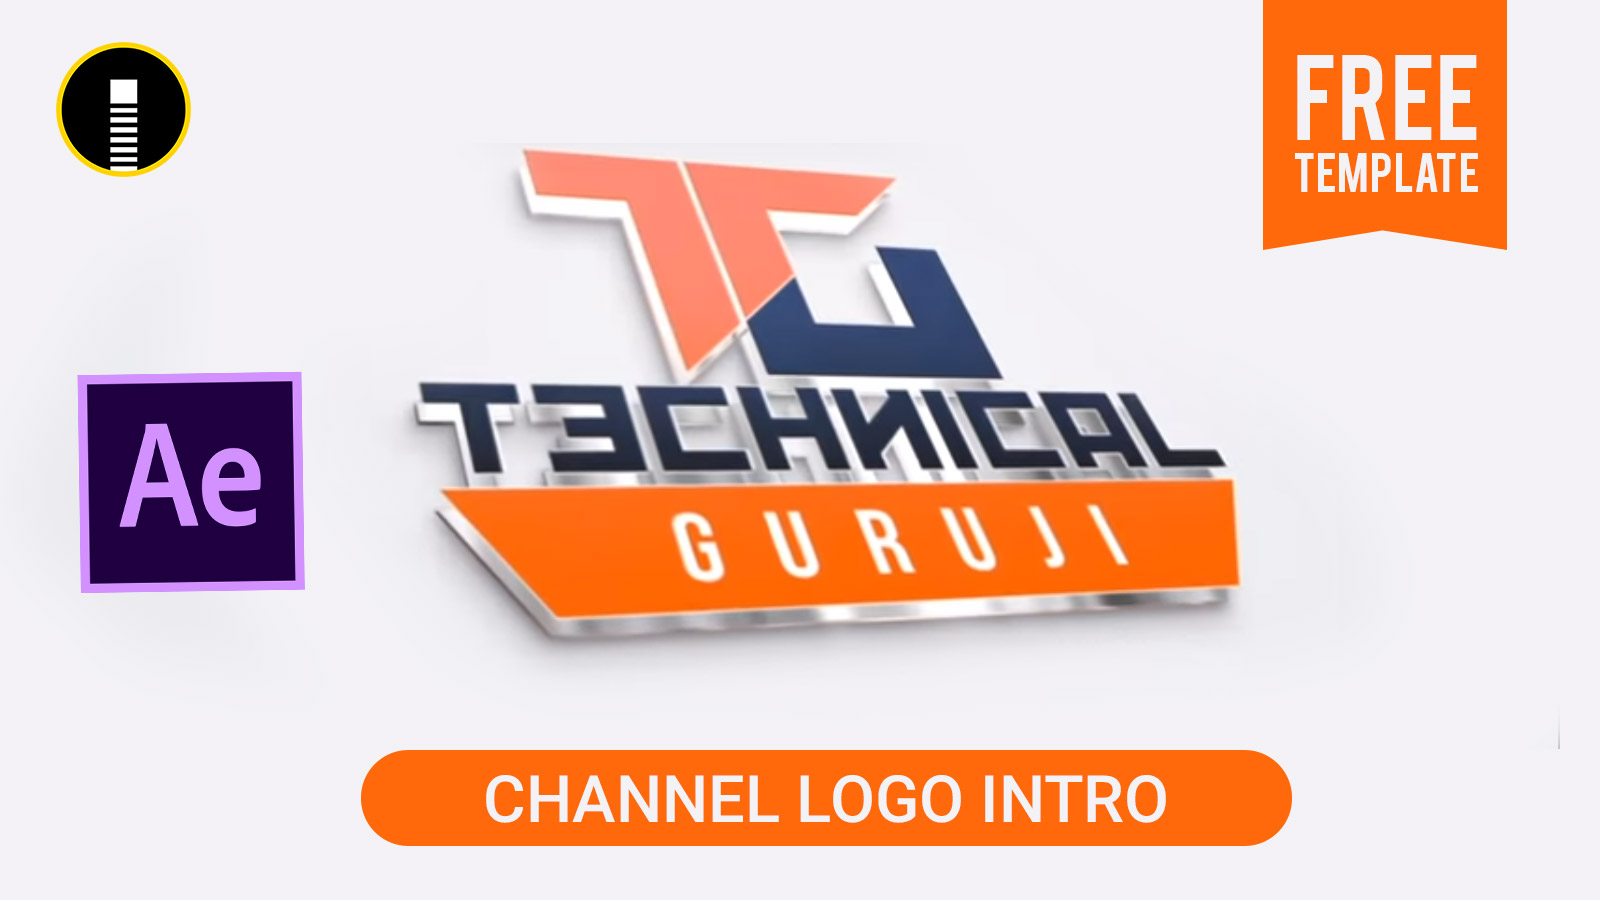 youtube channel logo intro like technical guruji free